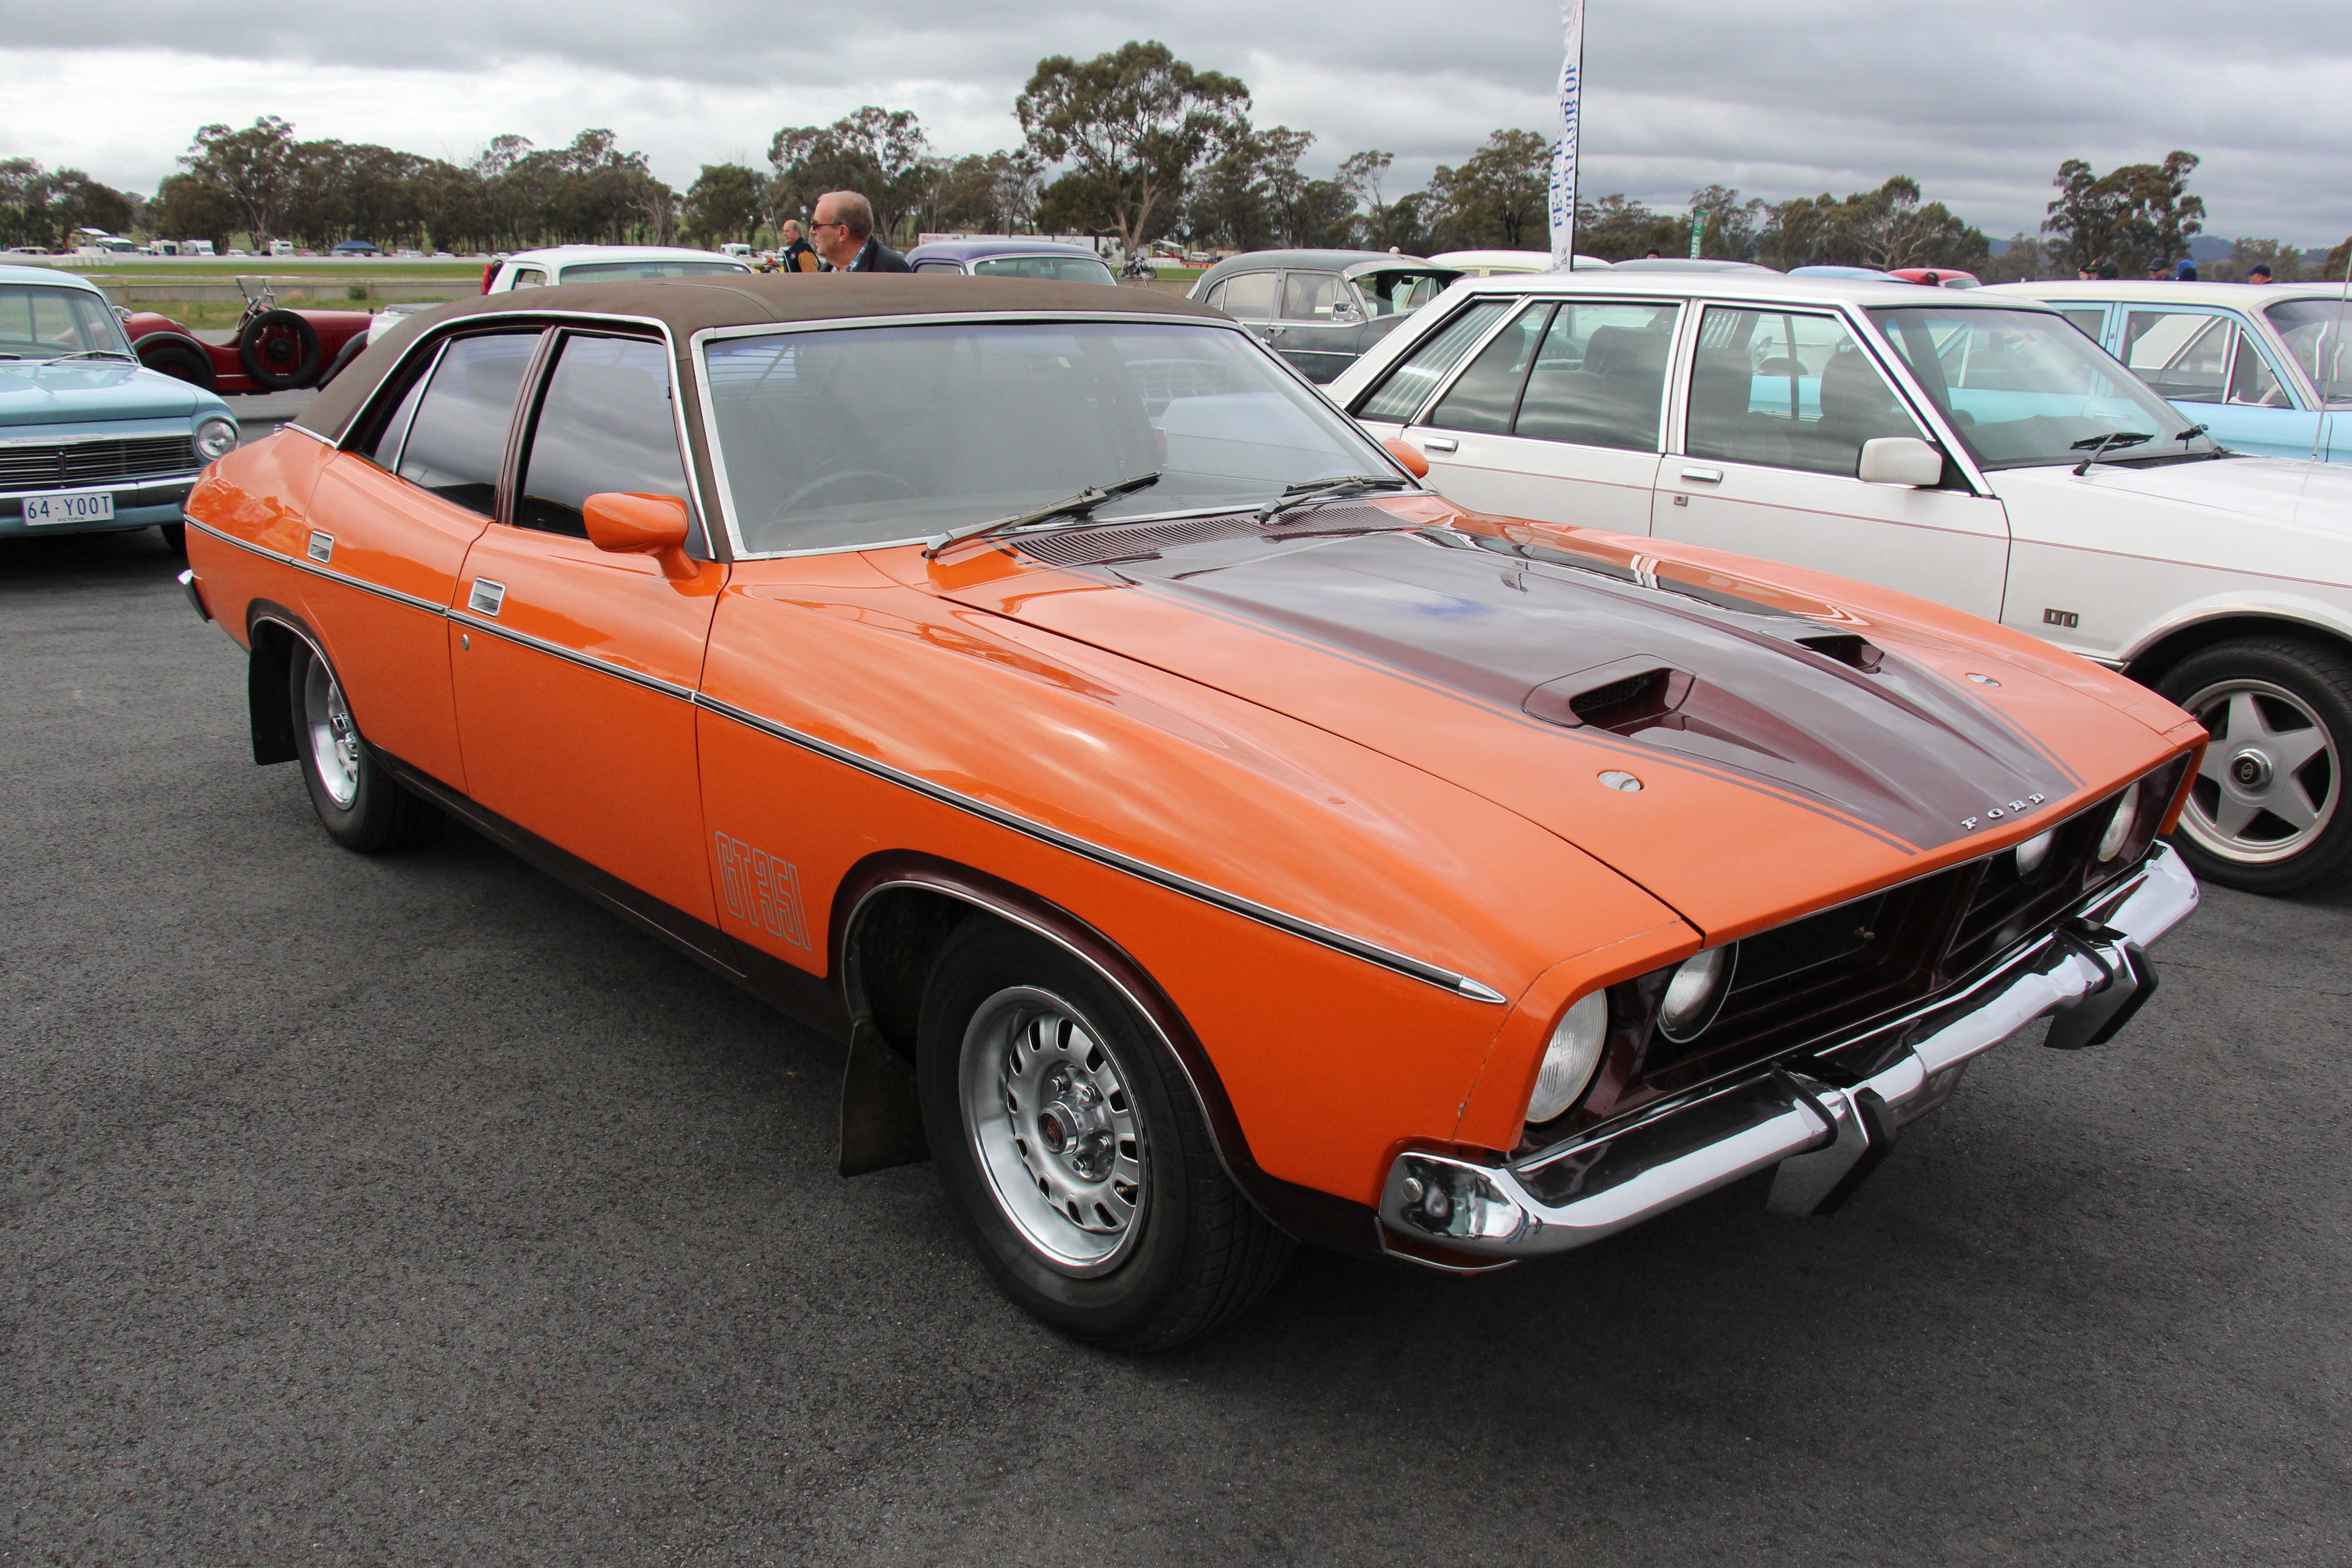 61042 Ford Falcon Xb Gt351 Coupe 1973 additionally 112216 also Mad Max 1979 Ripper Car Movies together with Top 5 Cool Australian Muscle Cars in addition 52857. on 1973 ford xb falcon gt351